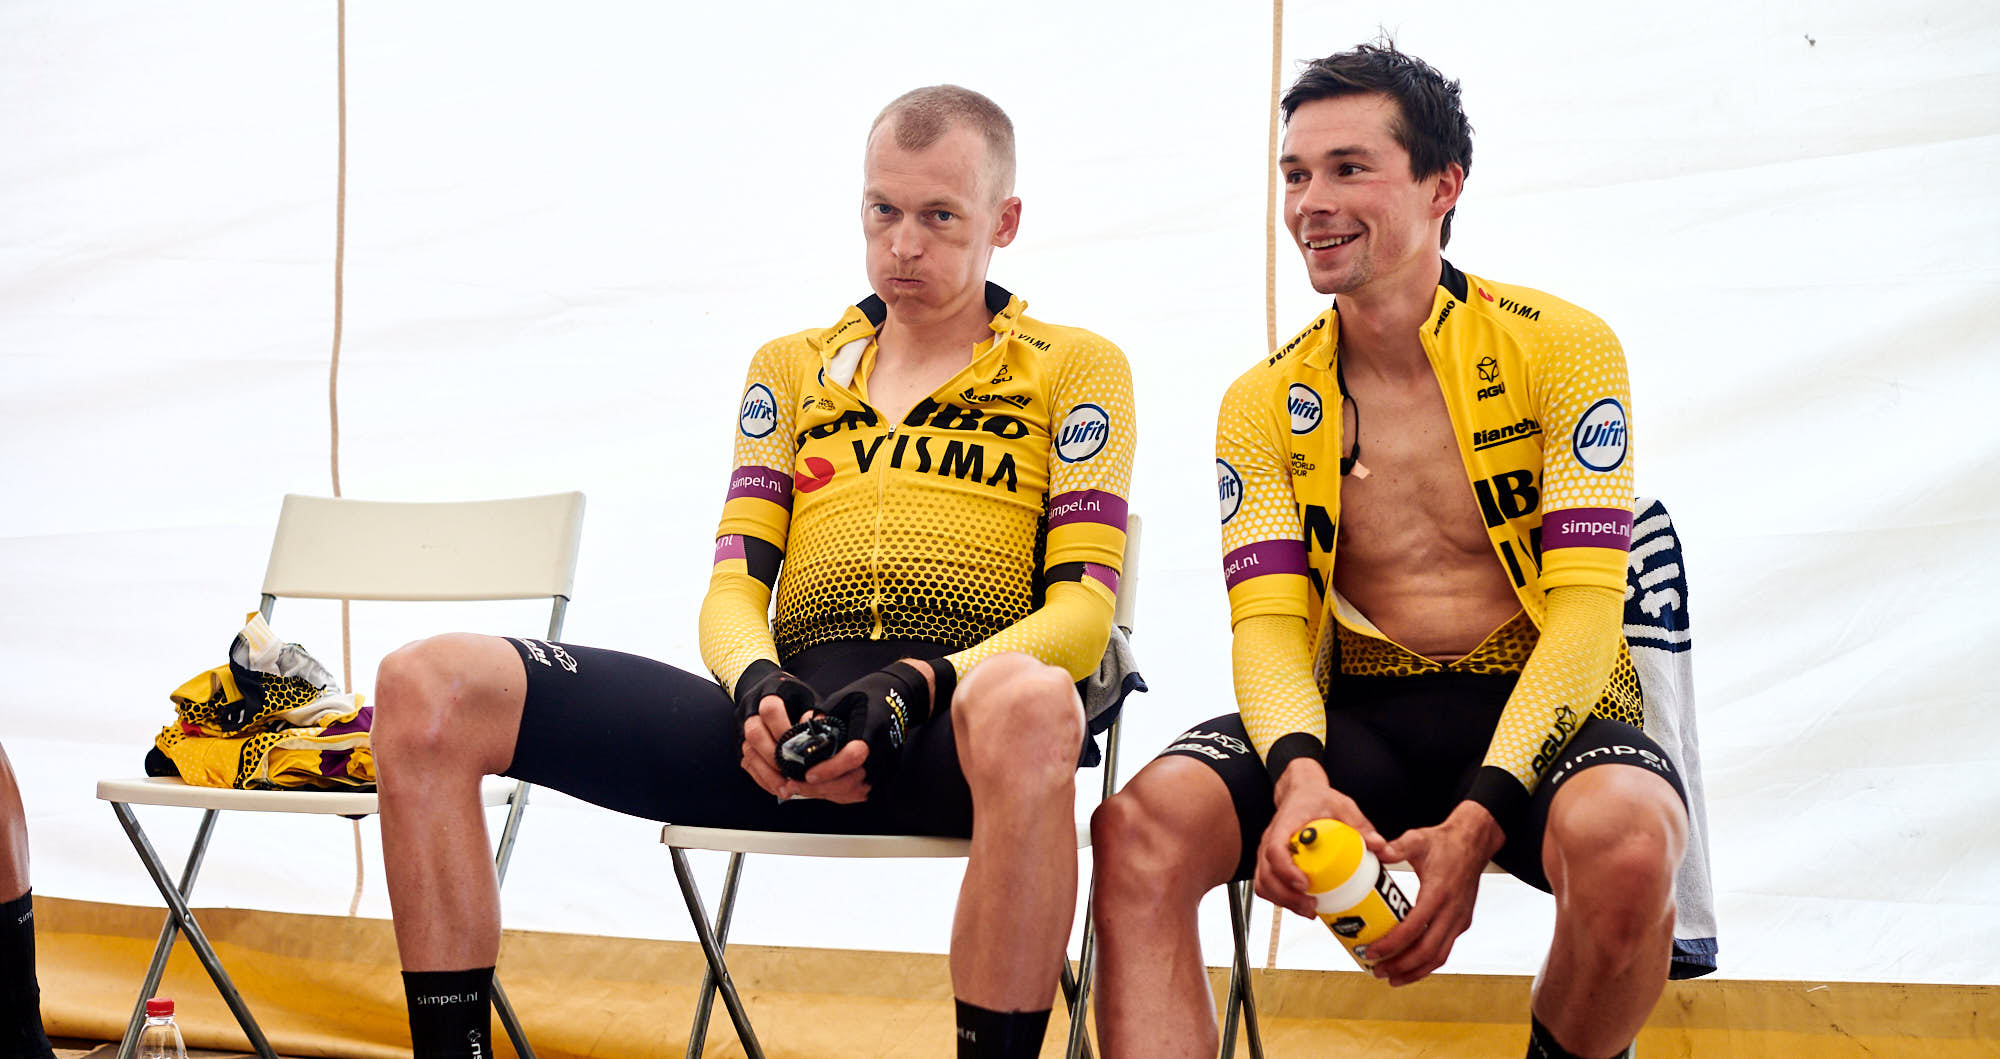 Primoz Roglic and Robert Gesink after finishing